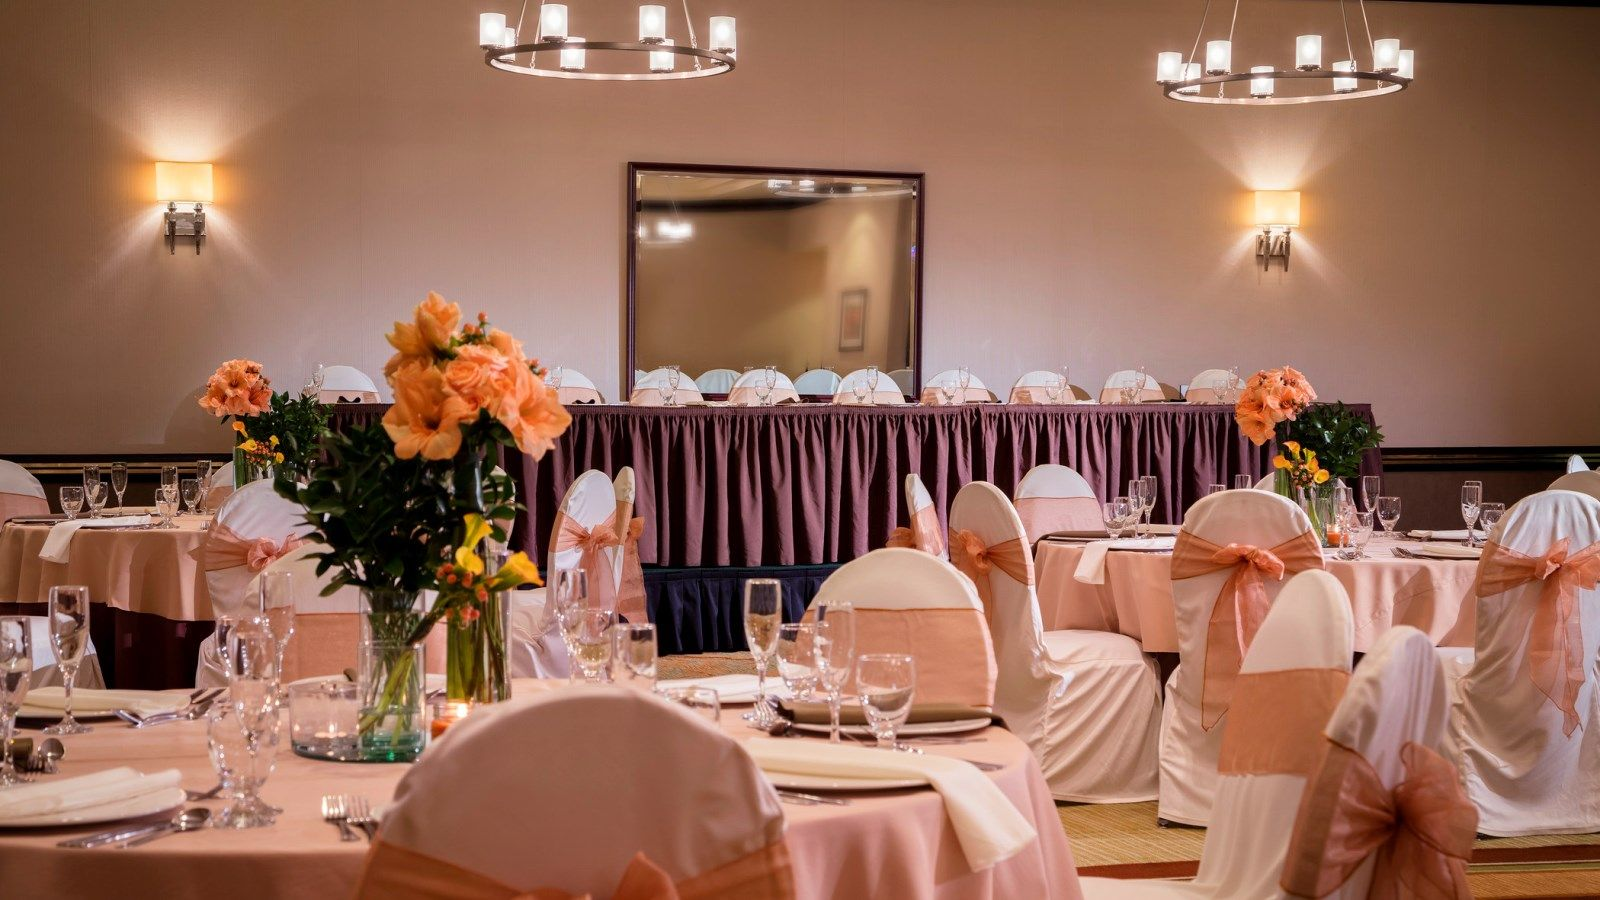 Wilmington Wedding Venues - Ballroom